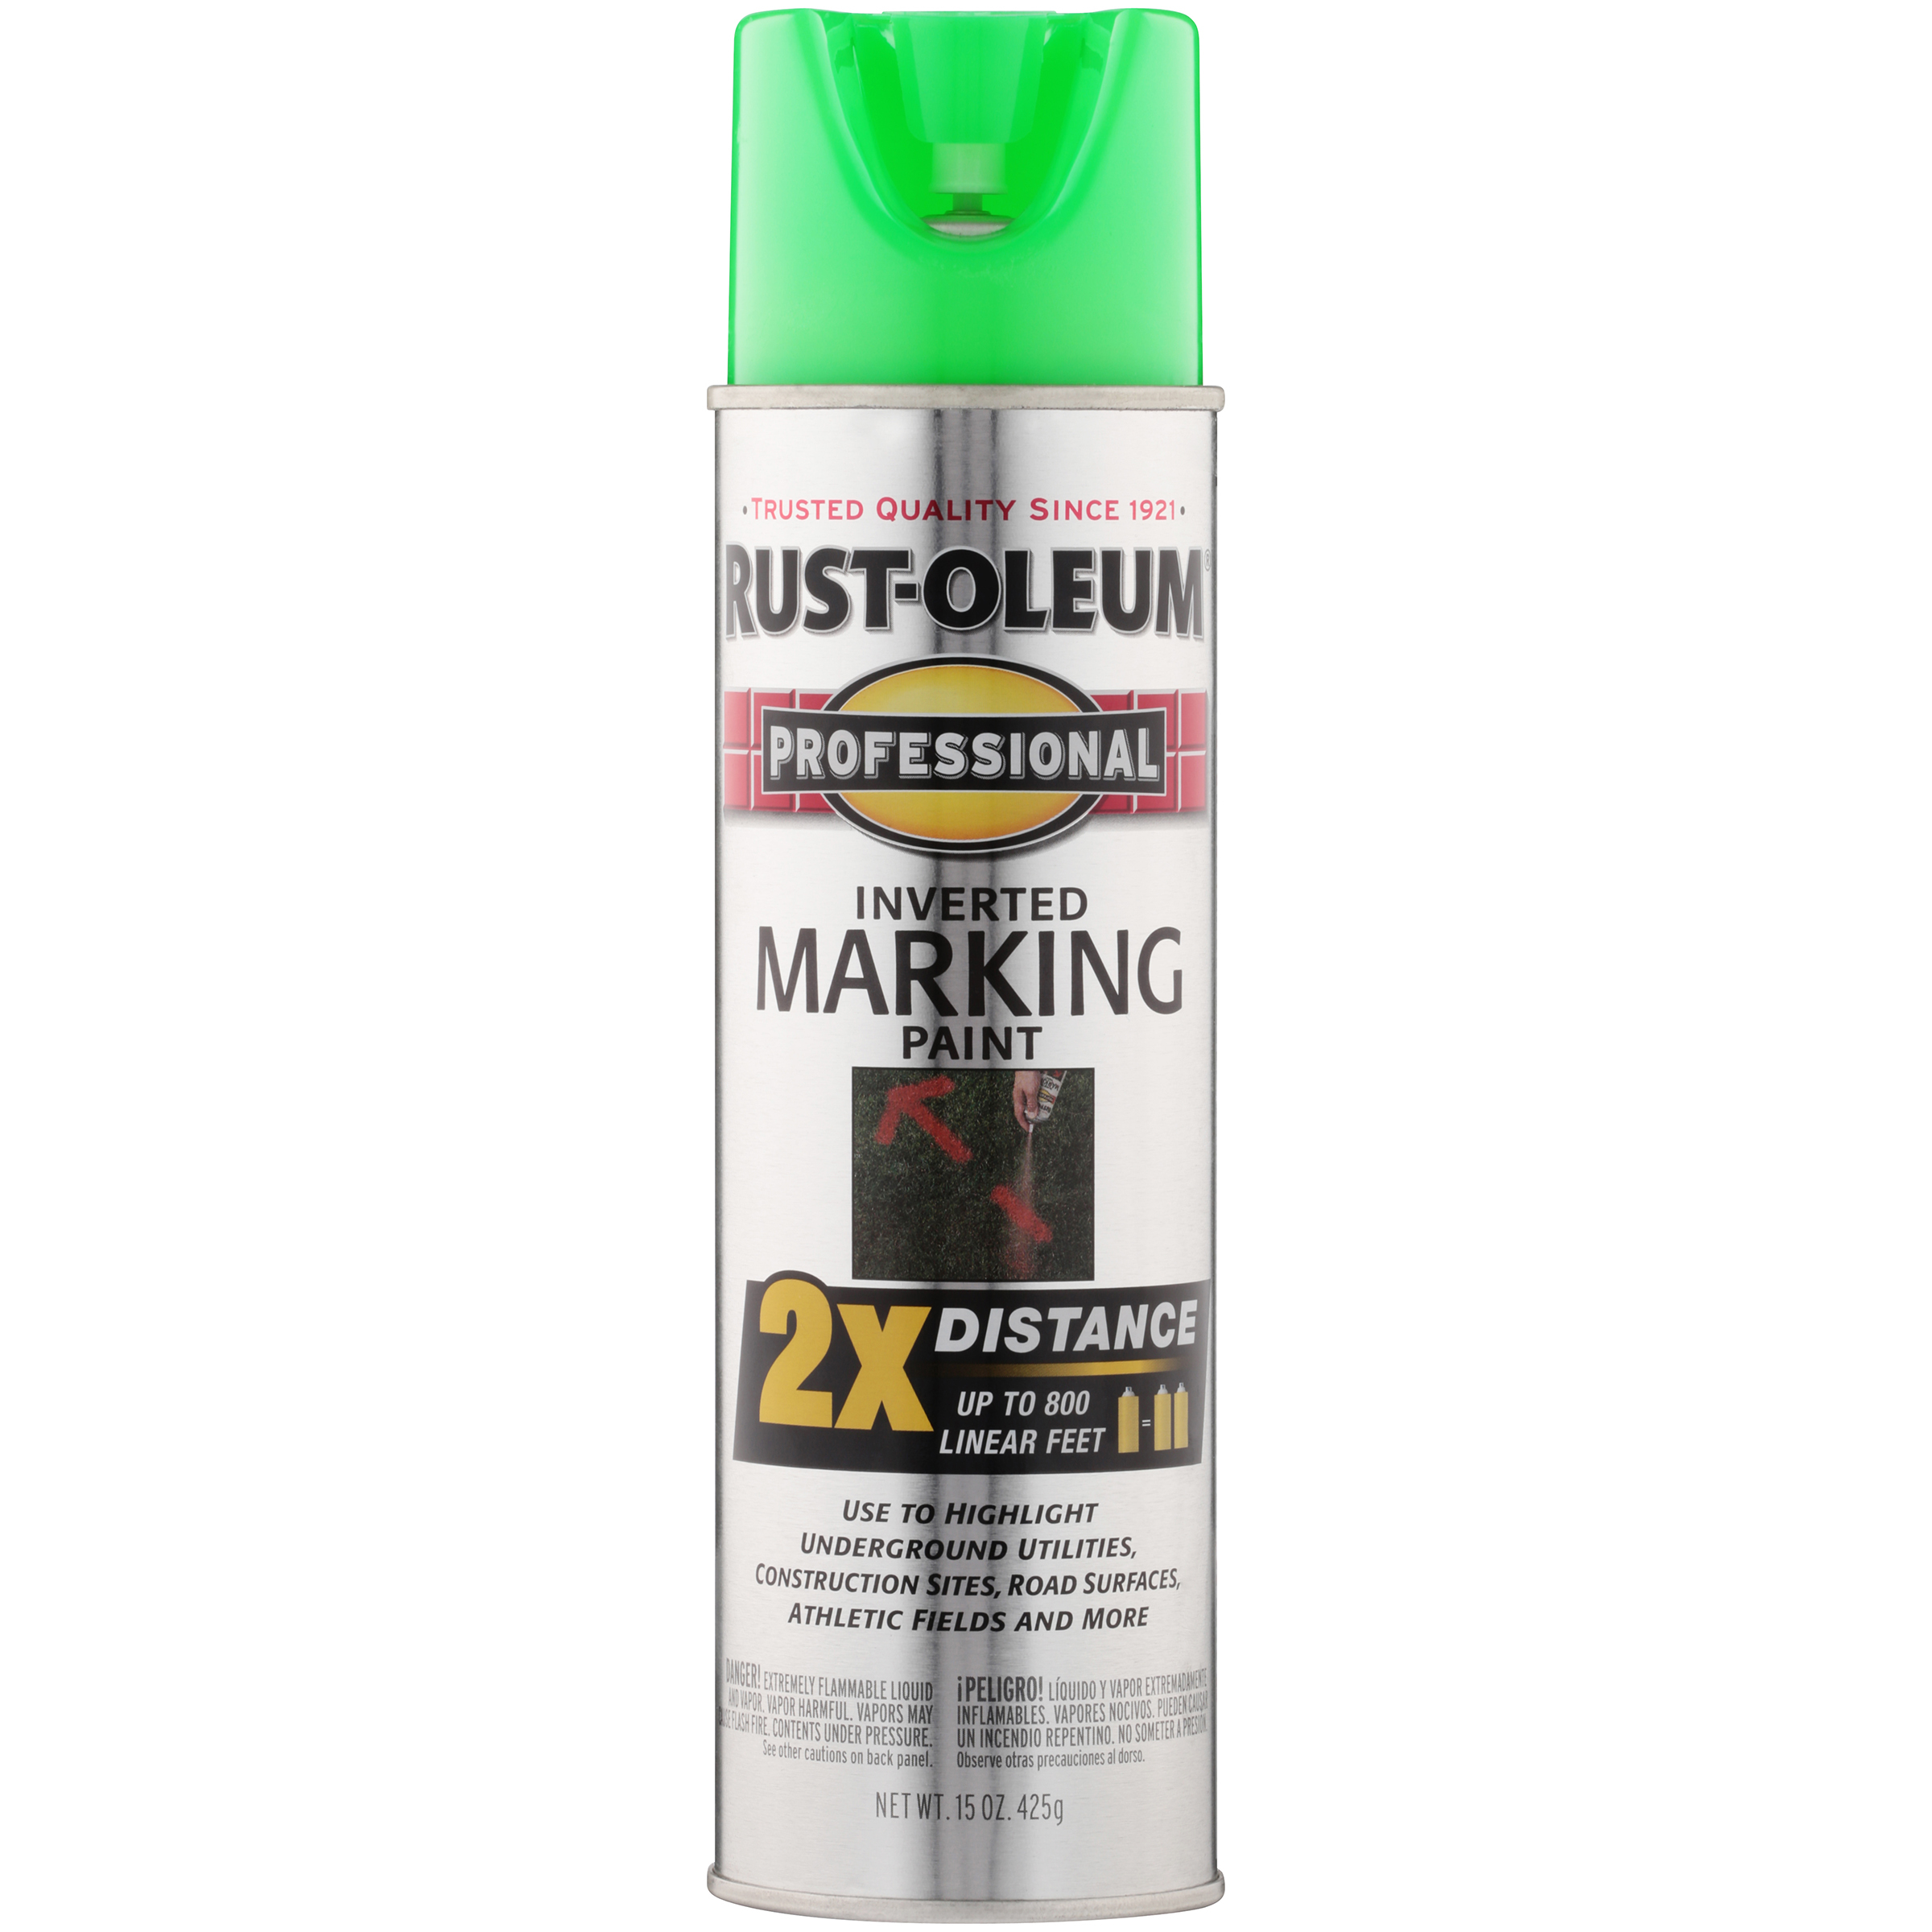 Rust-Oleum Professional Fluorescent Green Inverted Marking Spray Paint, 15 oz